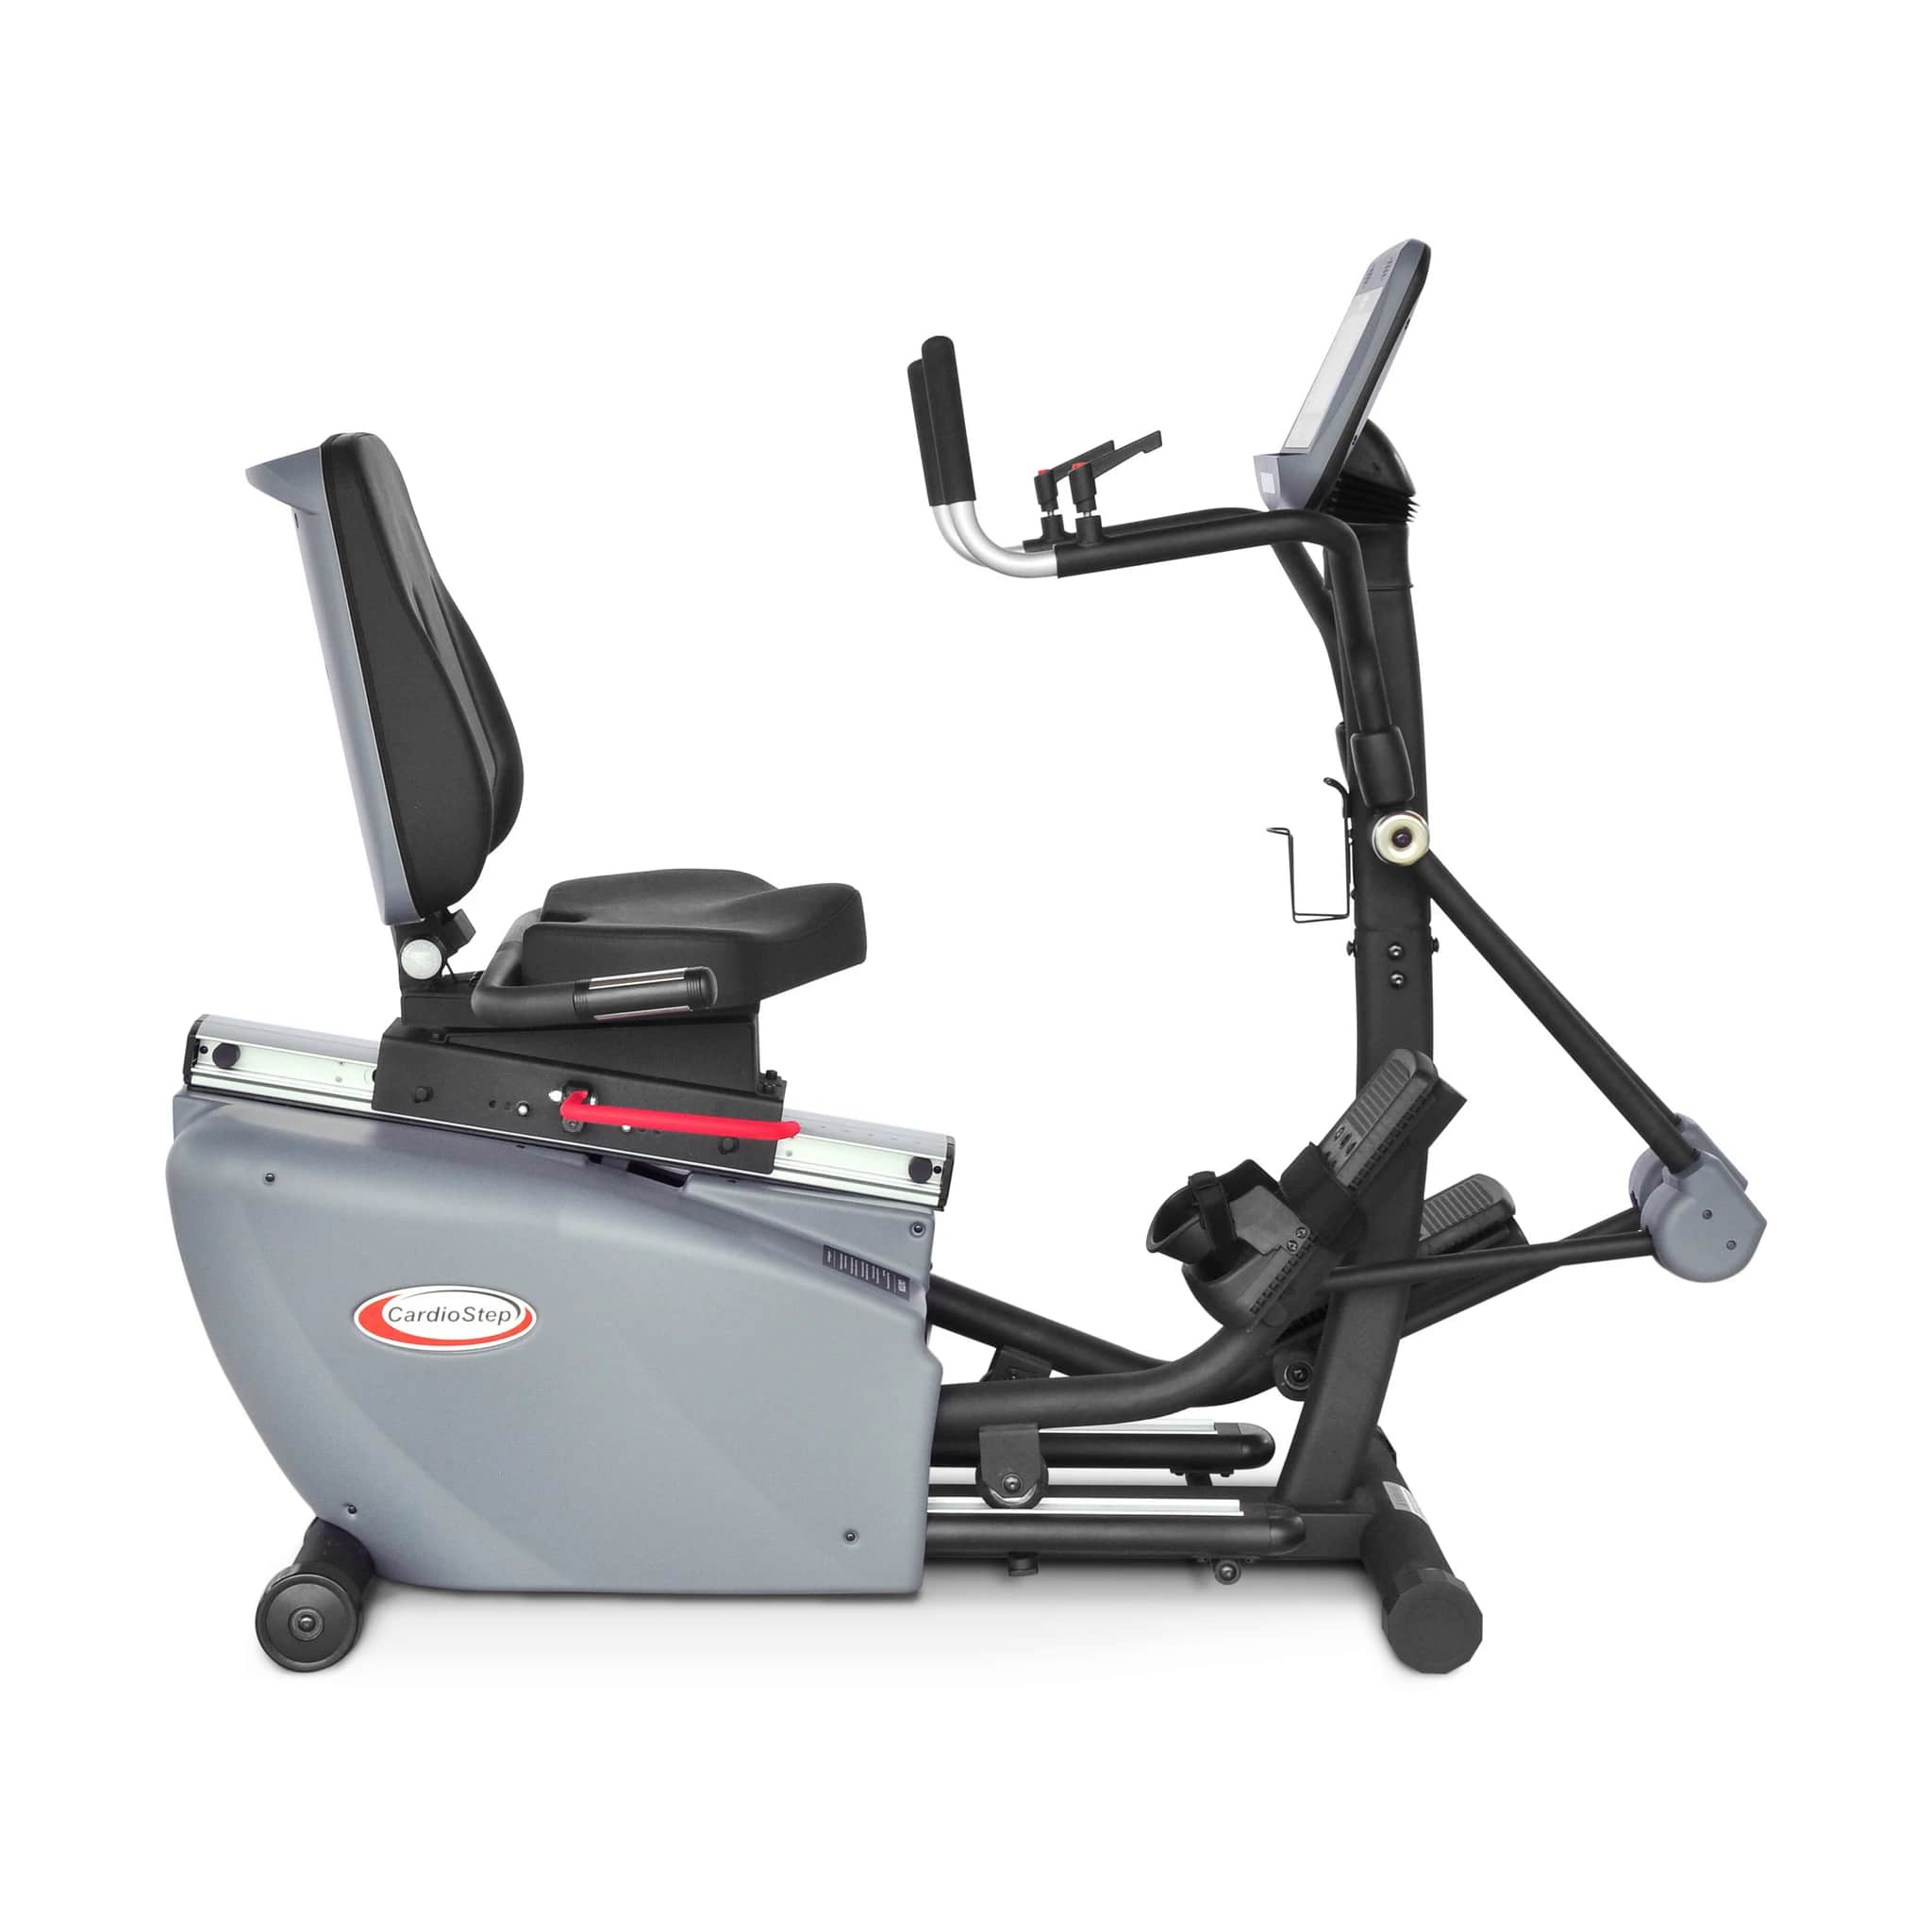 CardioStep Recumbent Cross Trainer by HCI